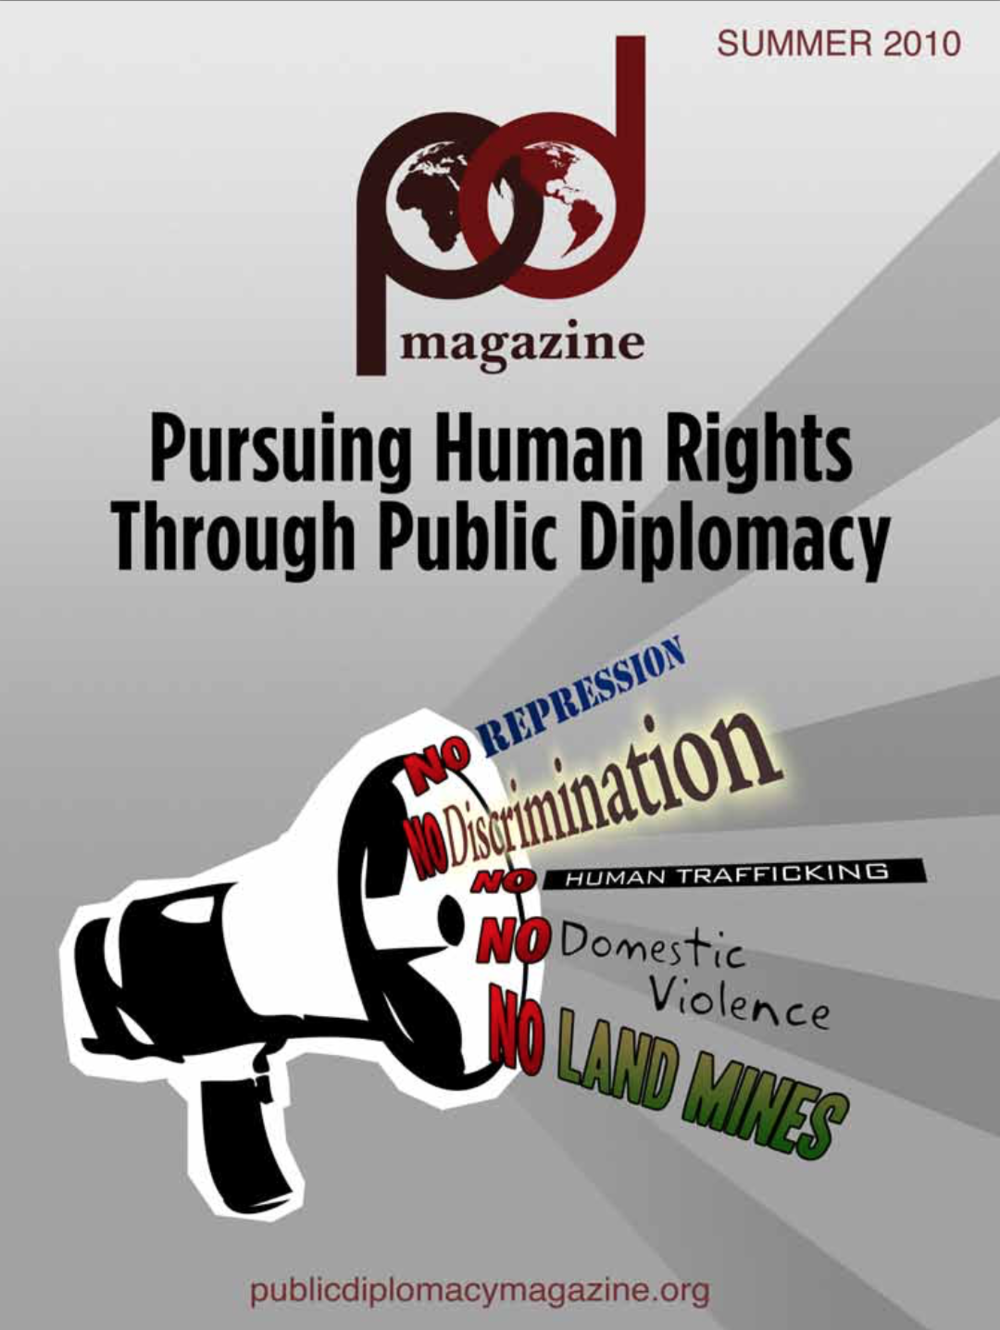 Human Rights and Public Diplomacy